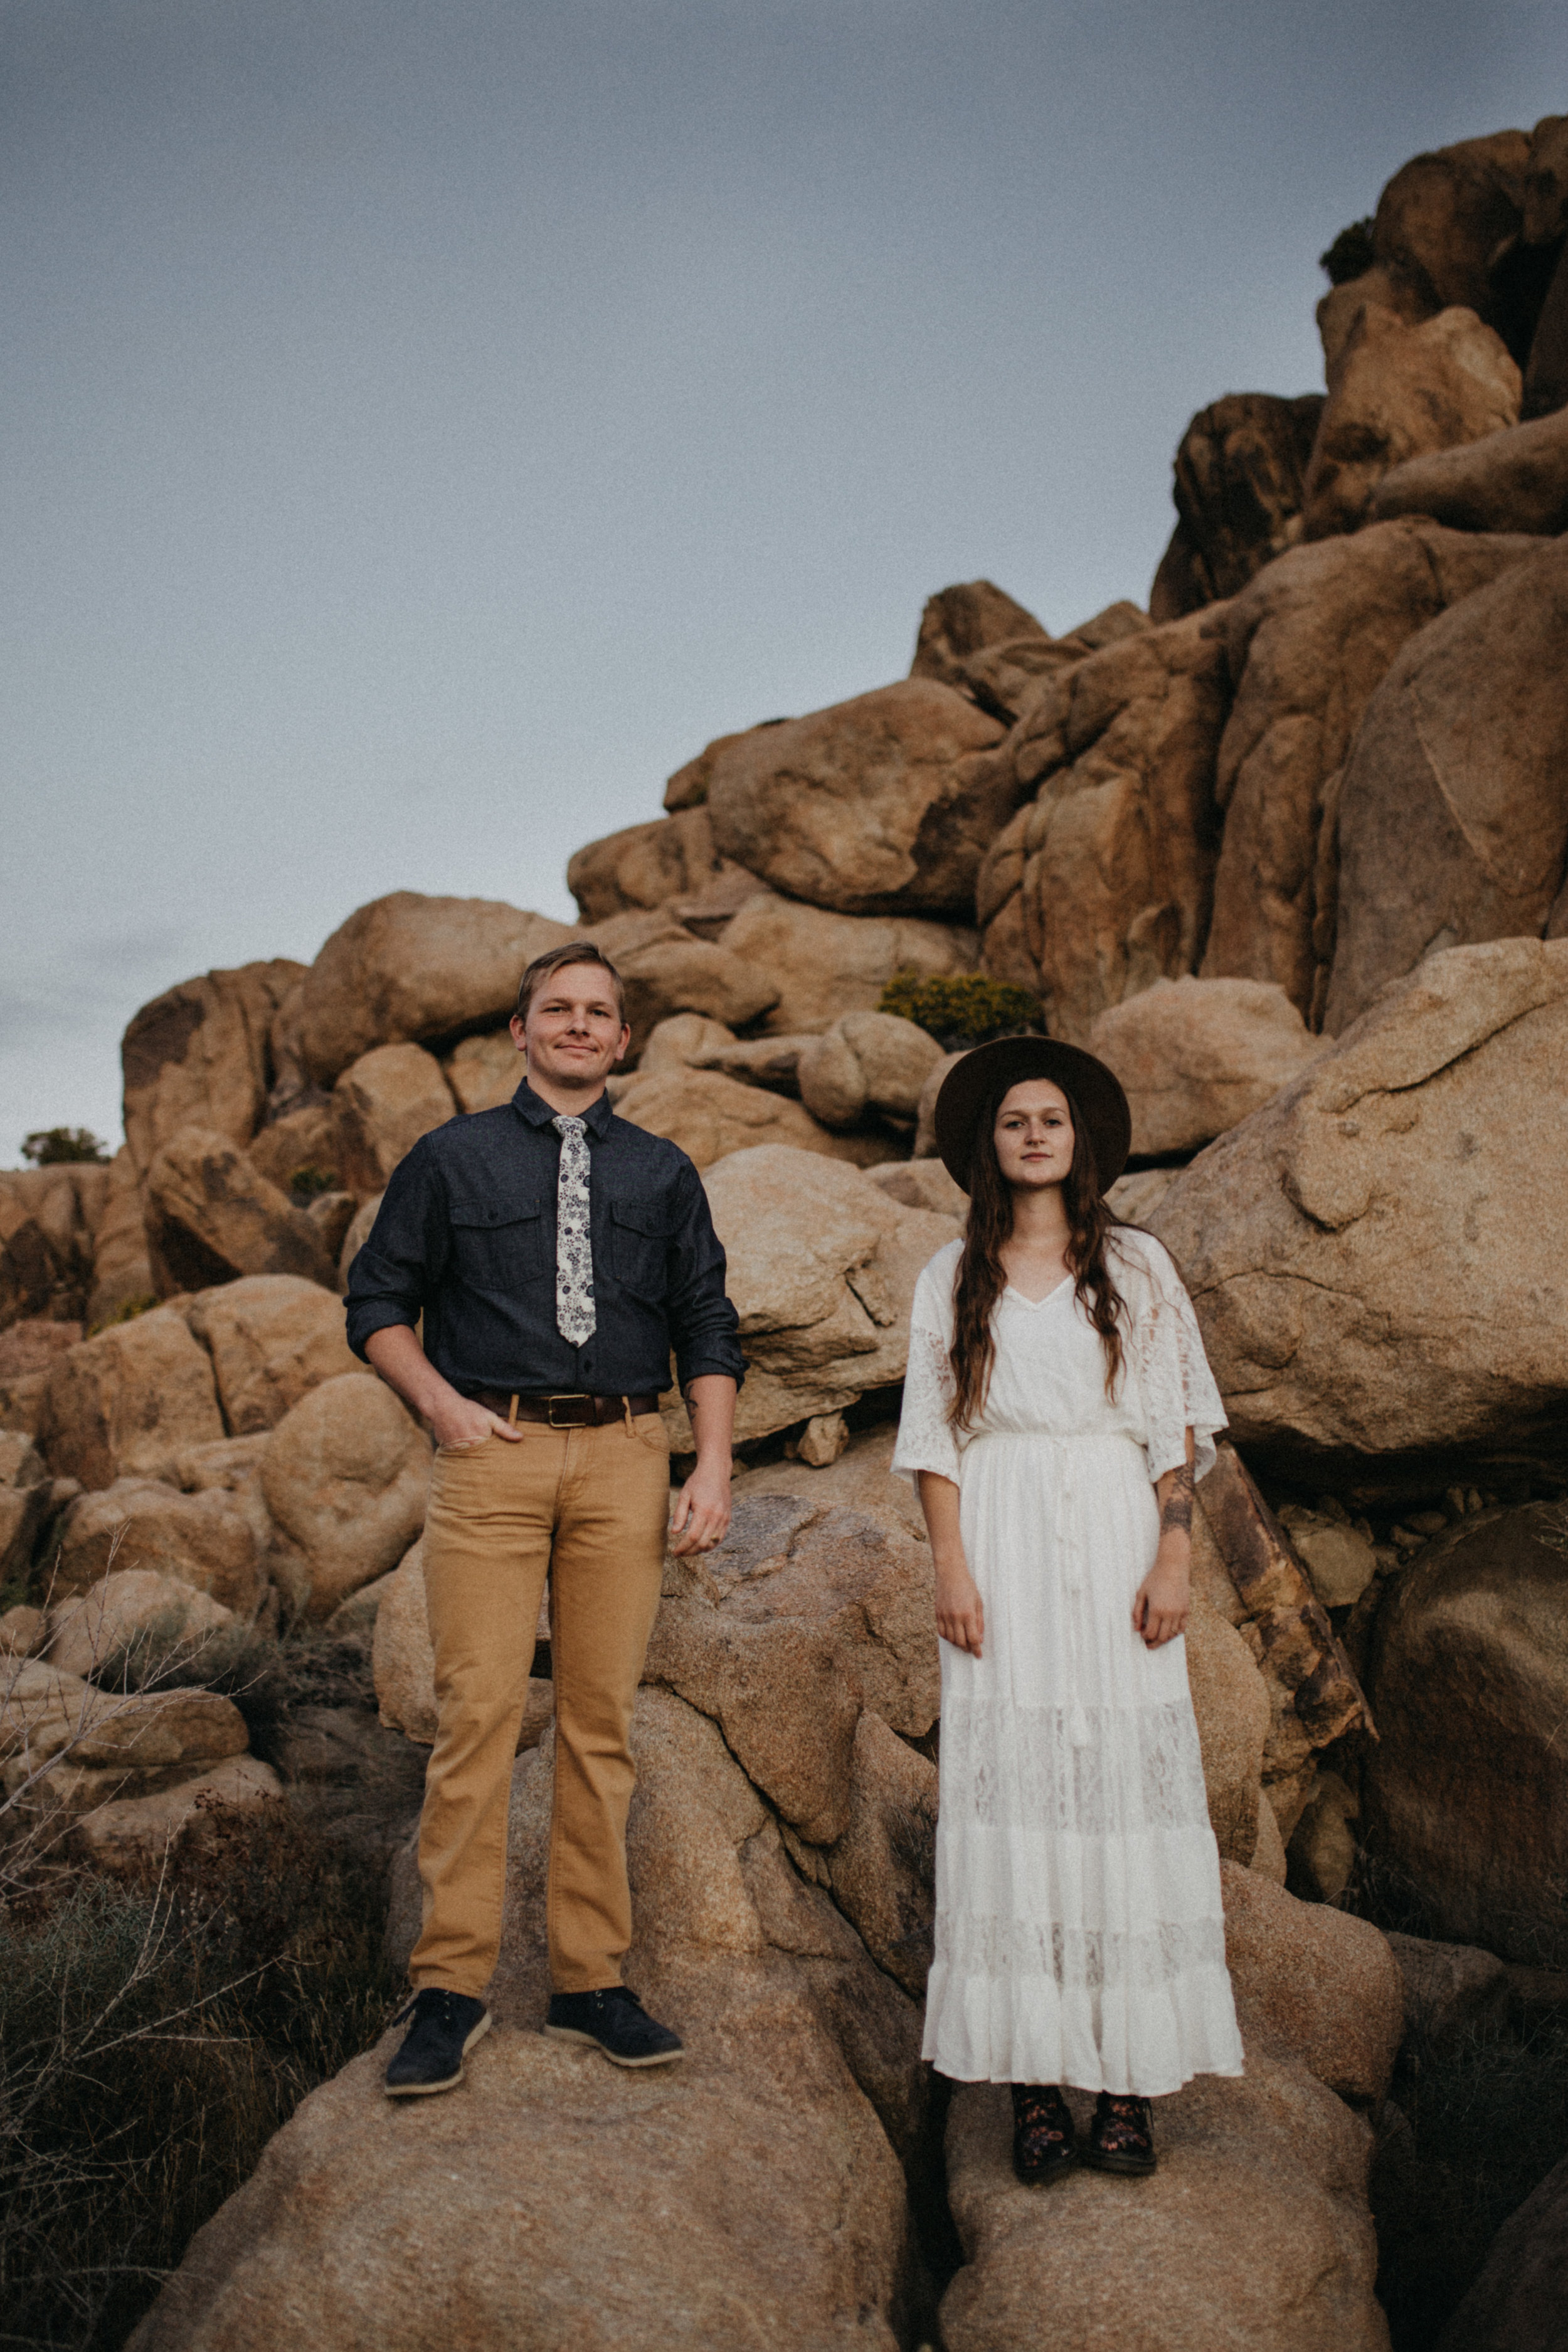 Joshua Tree National Park Adventure Couples Session Photographer Payton Marie Photography-35.jpg